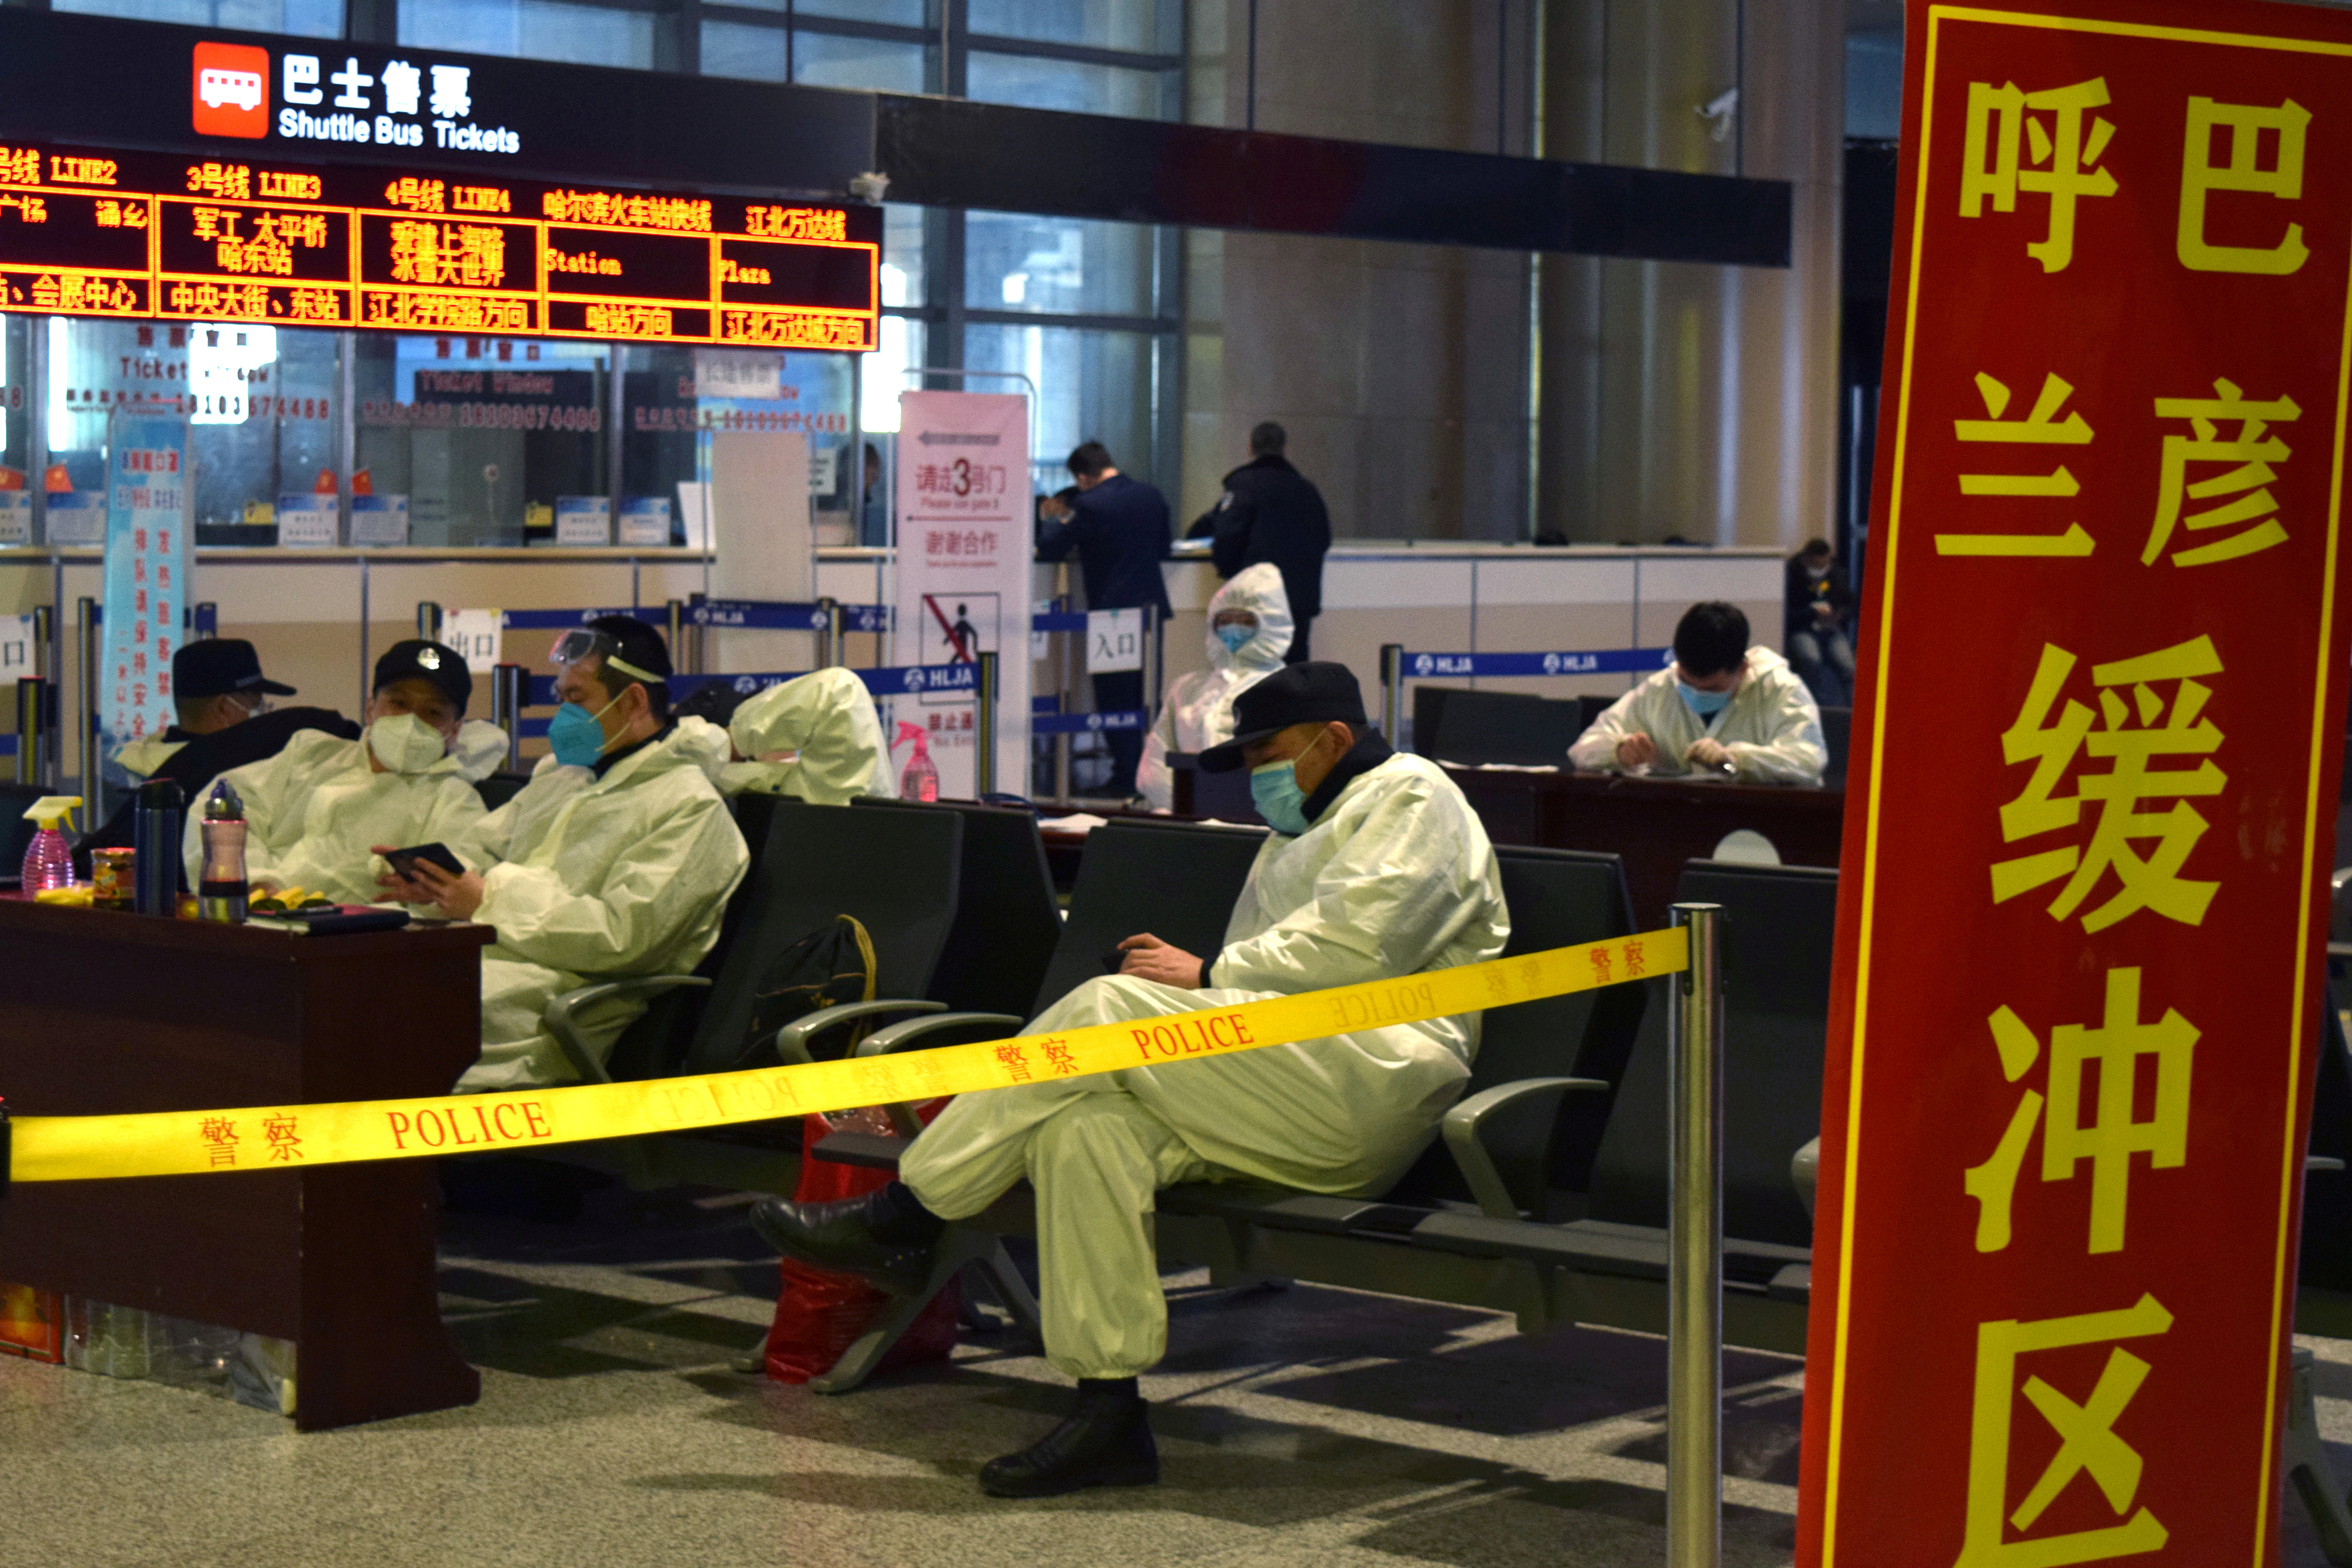 Police officers in protective suits are seen at an airport in Harbin, capital of Heilongjiang province bordering Russia, following the spread of the novel coronavirus disease (COVID-19) continues in the country, China April 11, 2020. REUTERS/Huizhong Wu/Files